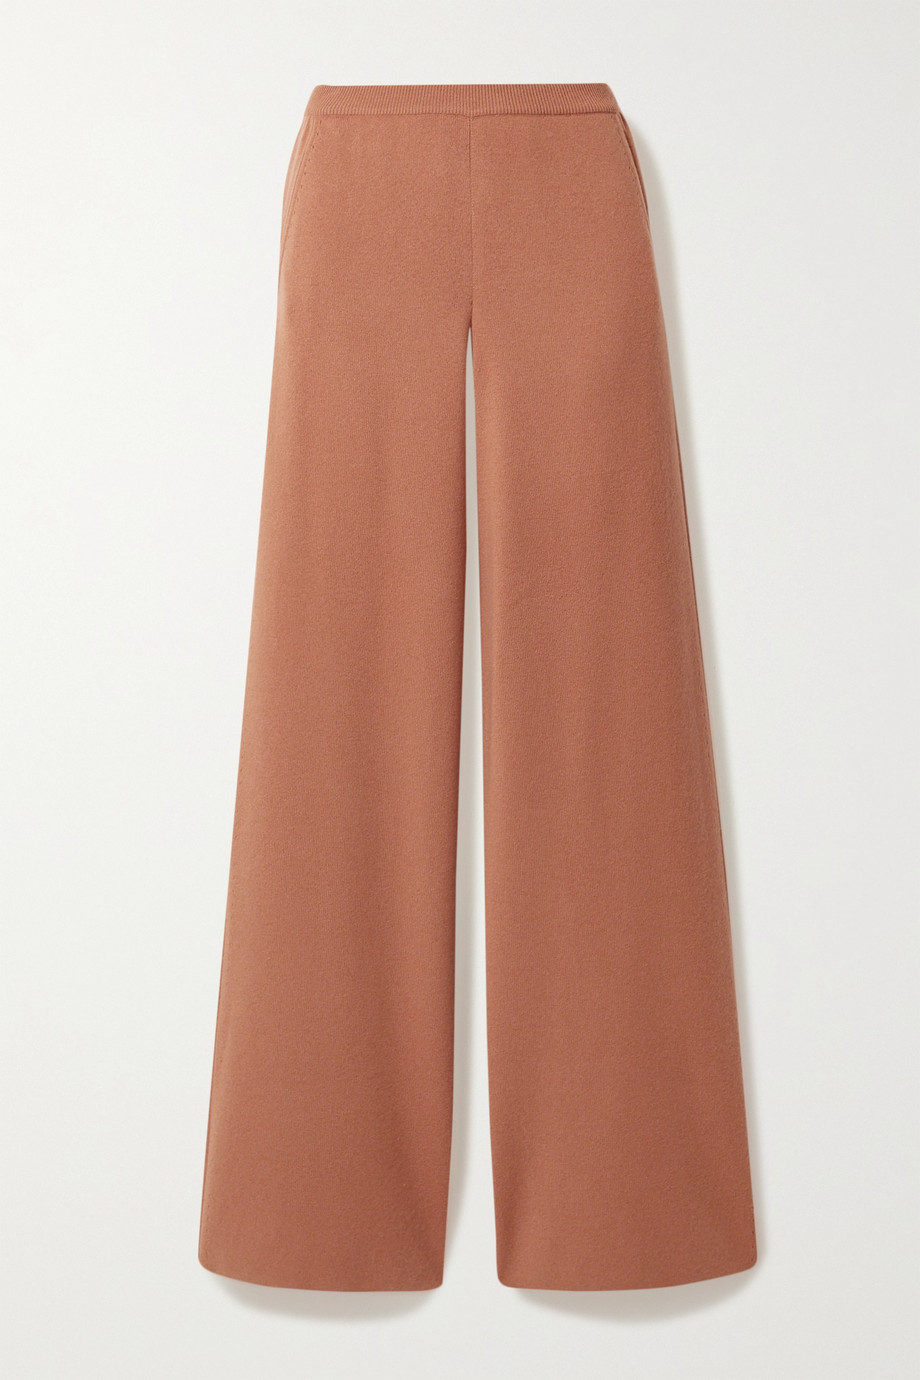 Loro Piana Canary cashmere straight-leg pants